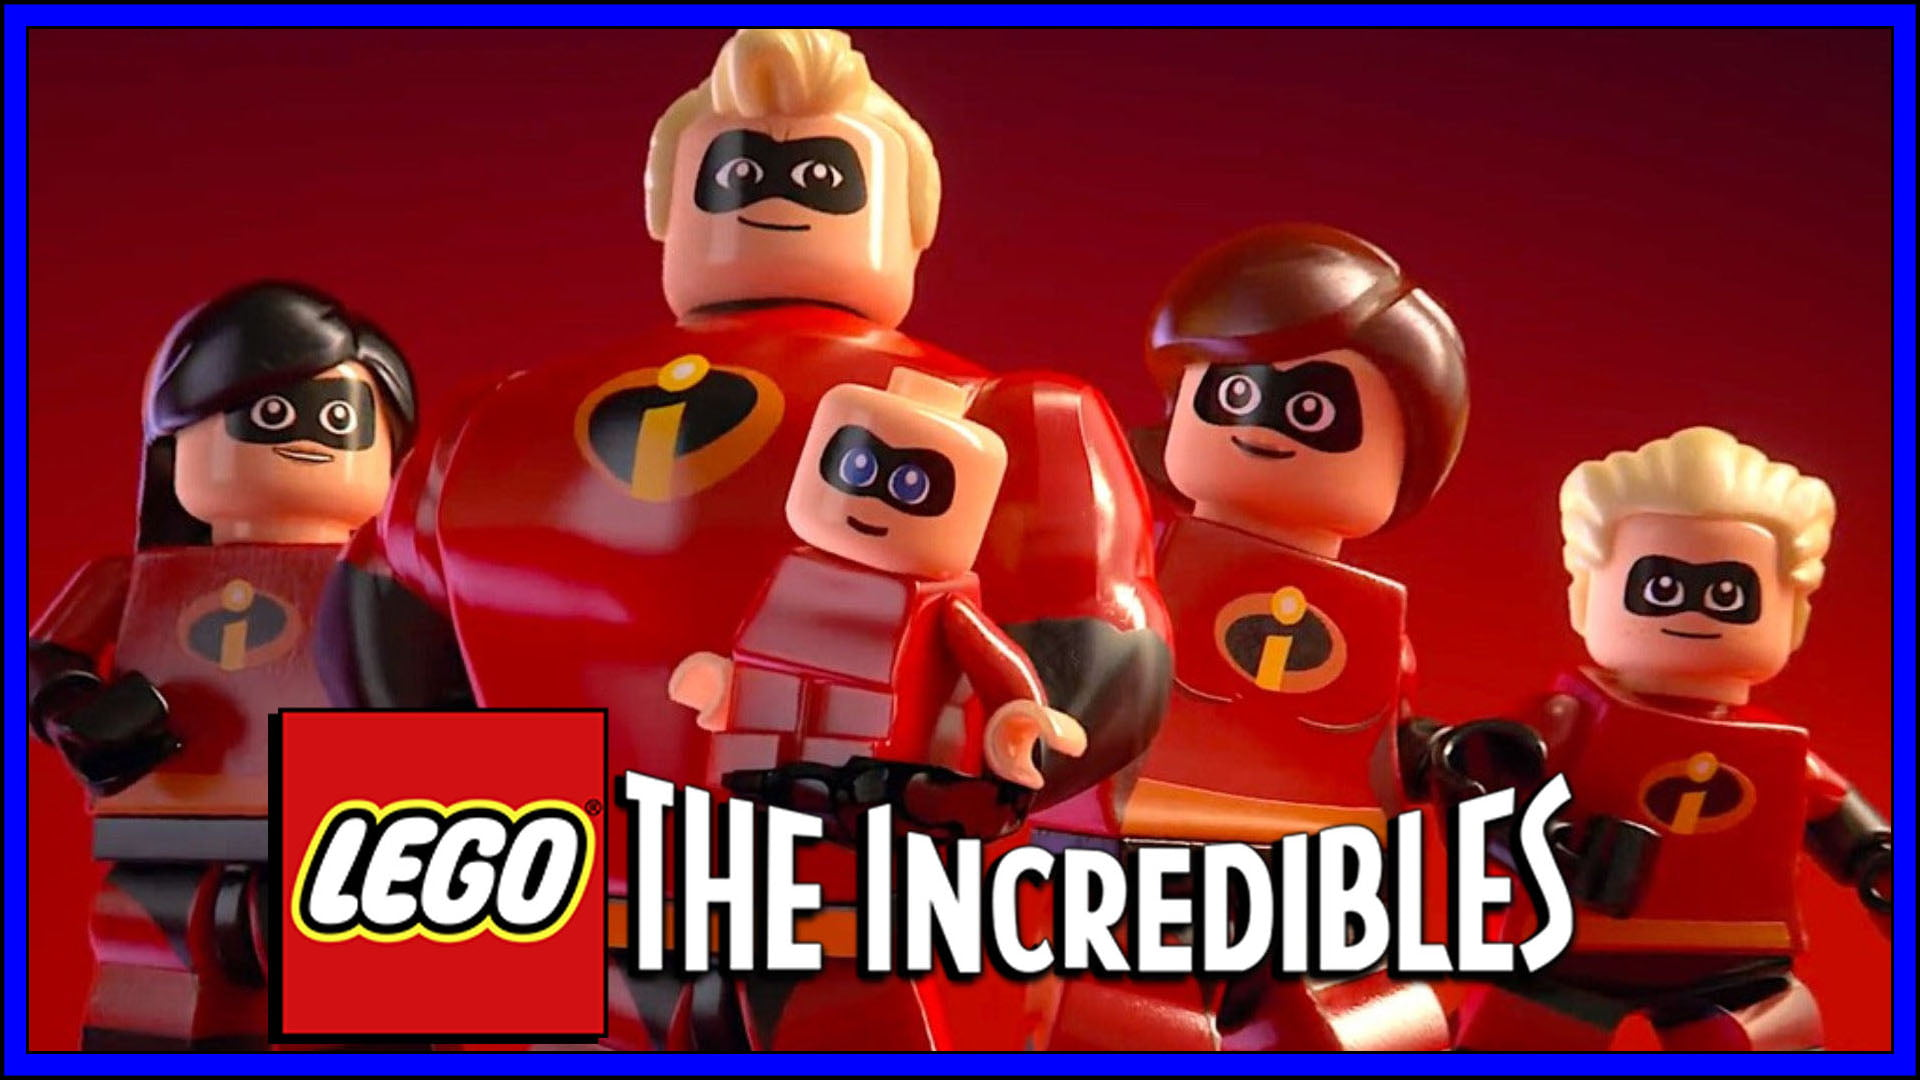 LEGO The Incredibles Fi3